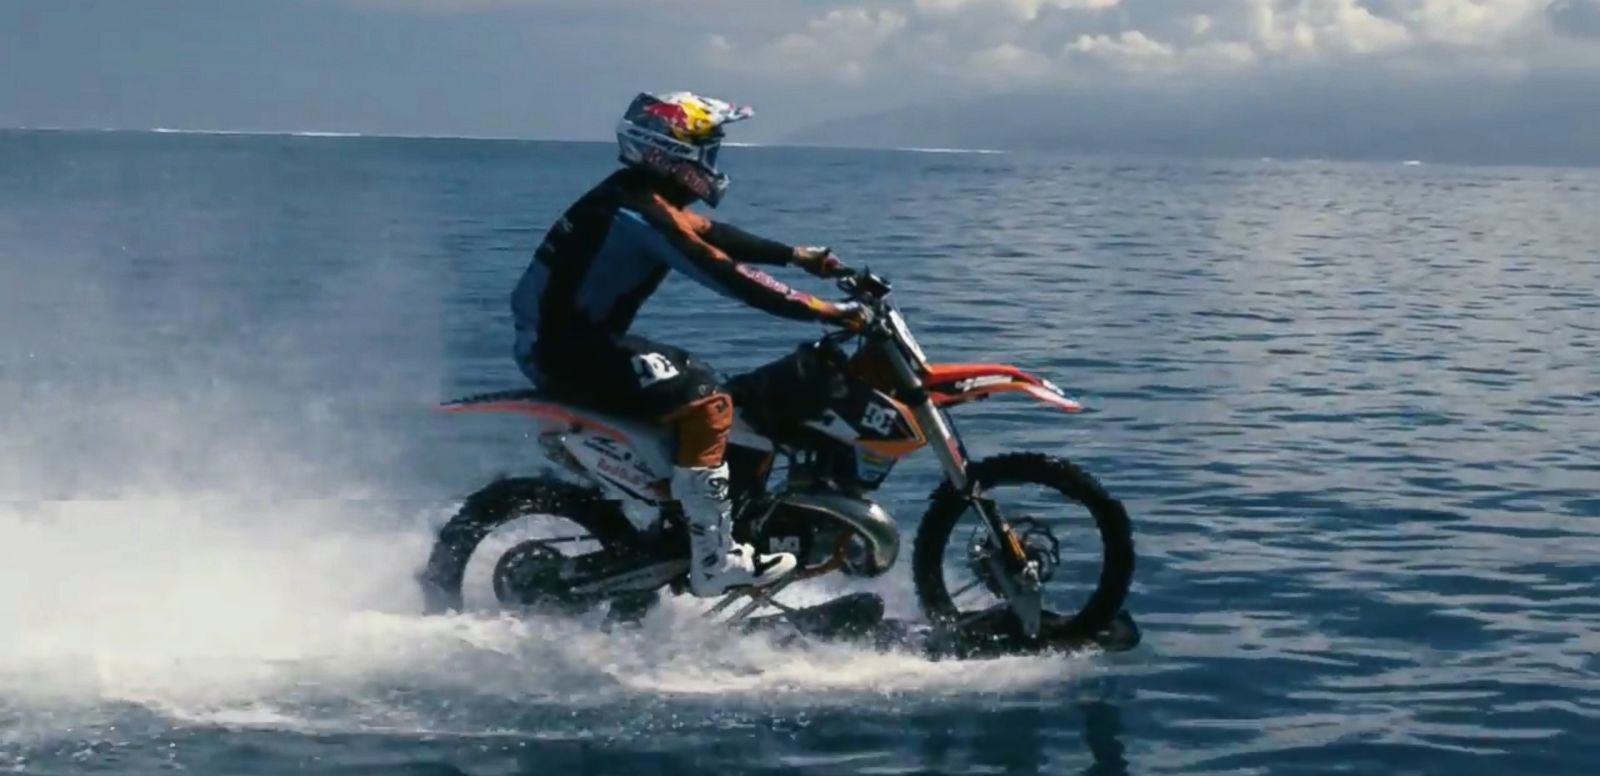 VIDEO: Robbie Maddison, an X-Games medalist, partnered with DC Shoes to create a modified dirt bike capable of riding across waves on Tahiti's shore.